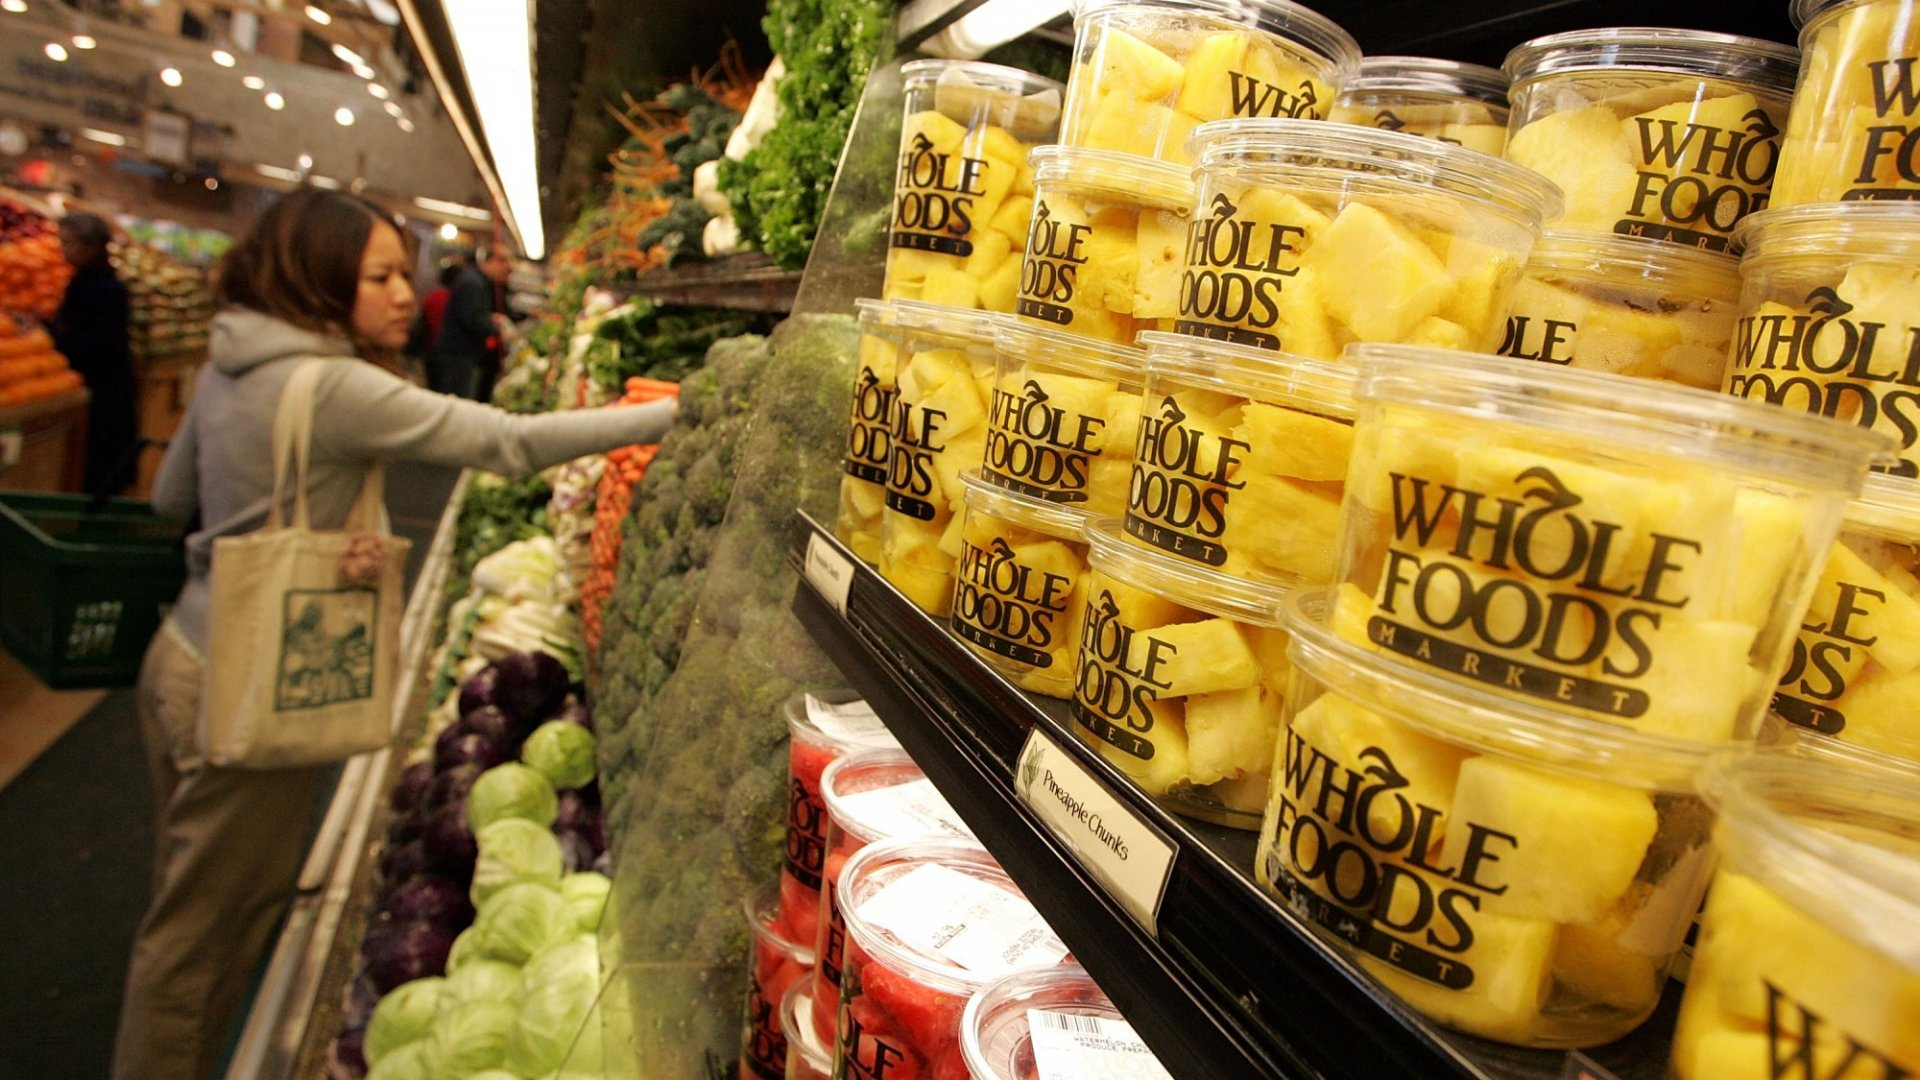 How Amazon Can Leverage Its Whole Foods Acquisition (and Help Your Bottom Line)